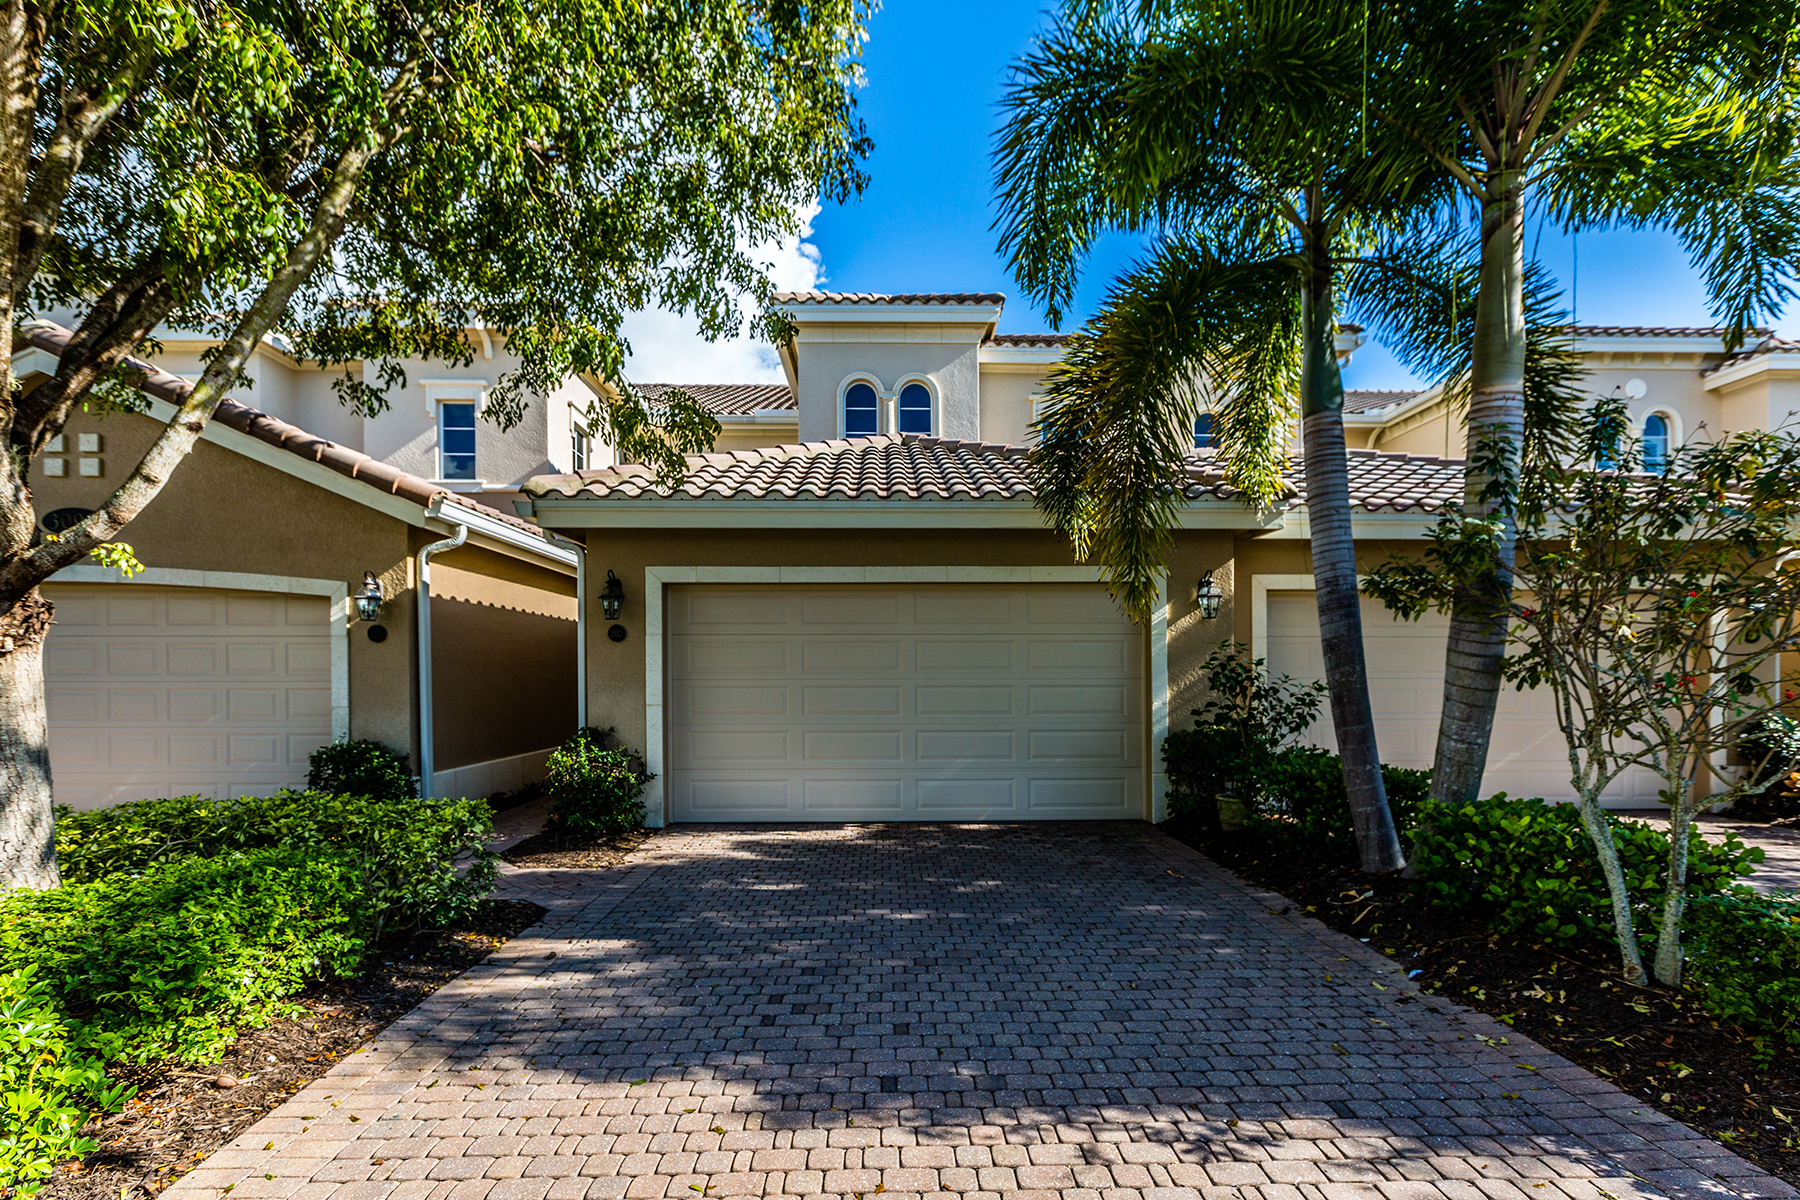 Condominio por un Venta en FIDDLERS CREEK 3093 Aviamar Cir 202 Naples, Florida, 34114 Estados Unidos